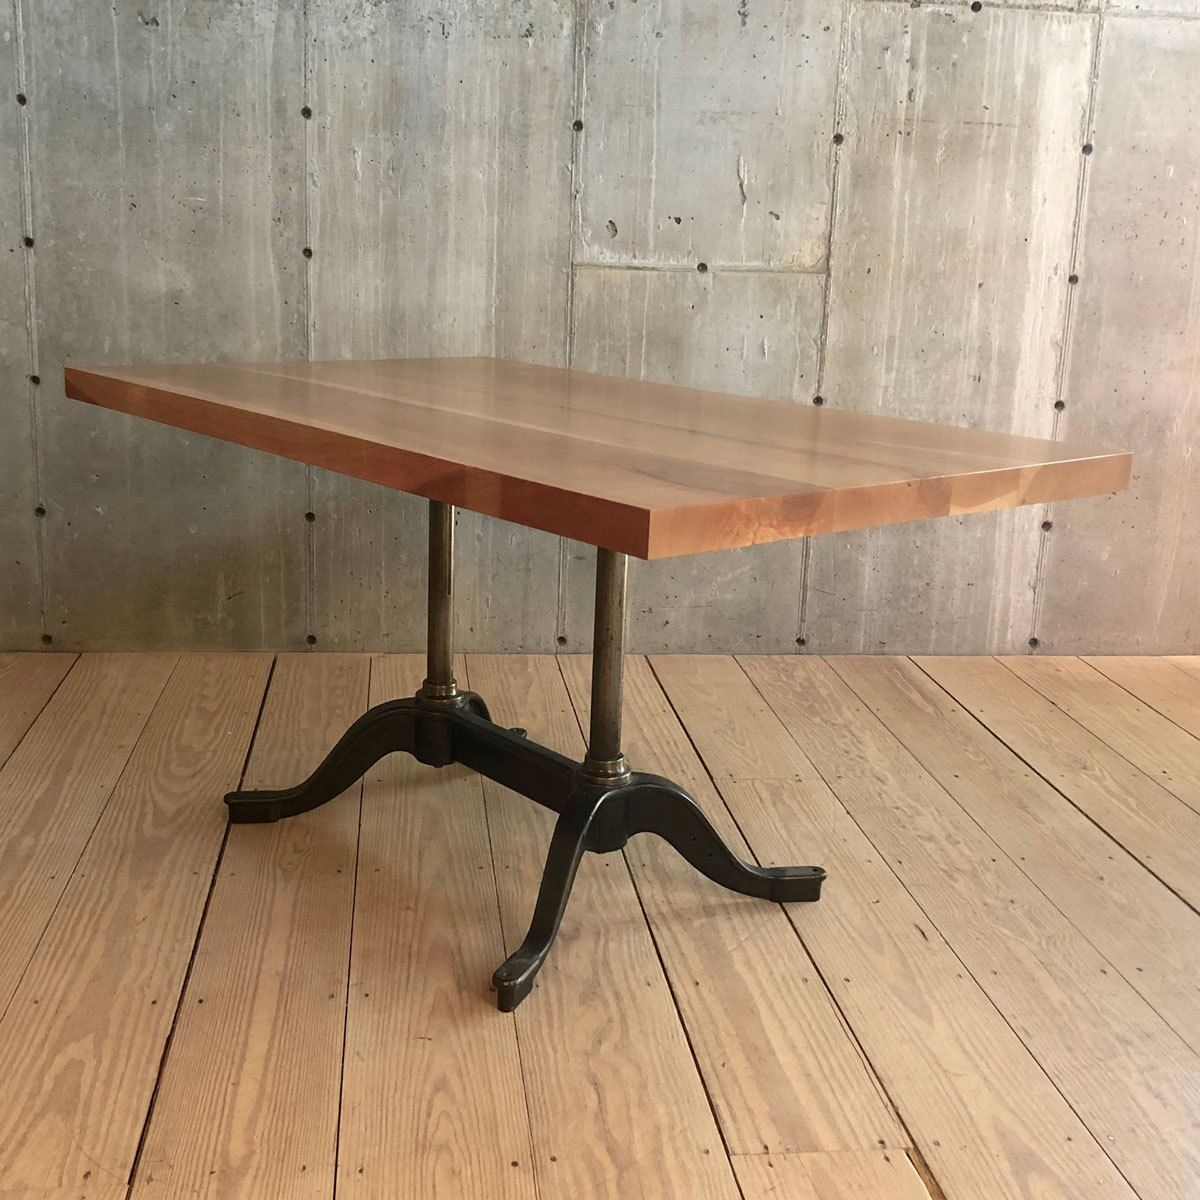 Cast Iron Table Base With Cherry Wood Top (With Images Regarding 2018 Dellaney 35'' Iron Dining Tables (View 5 of 15)